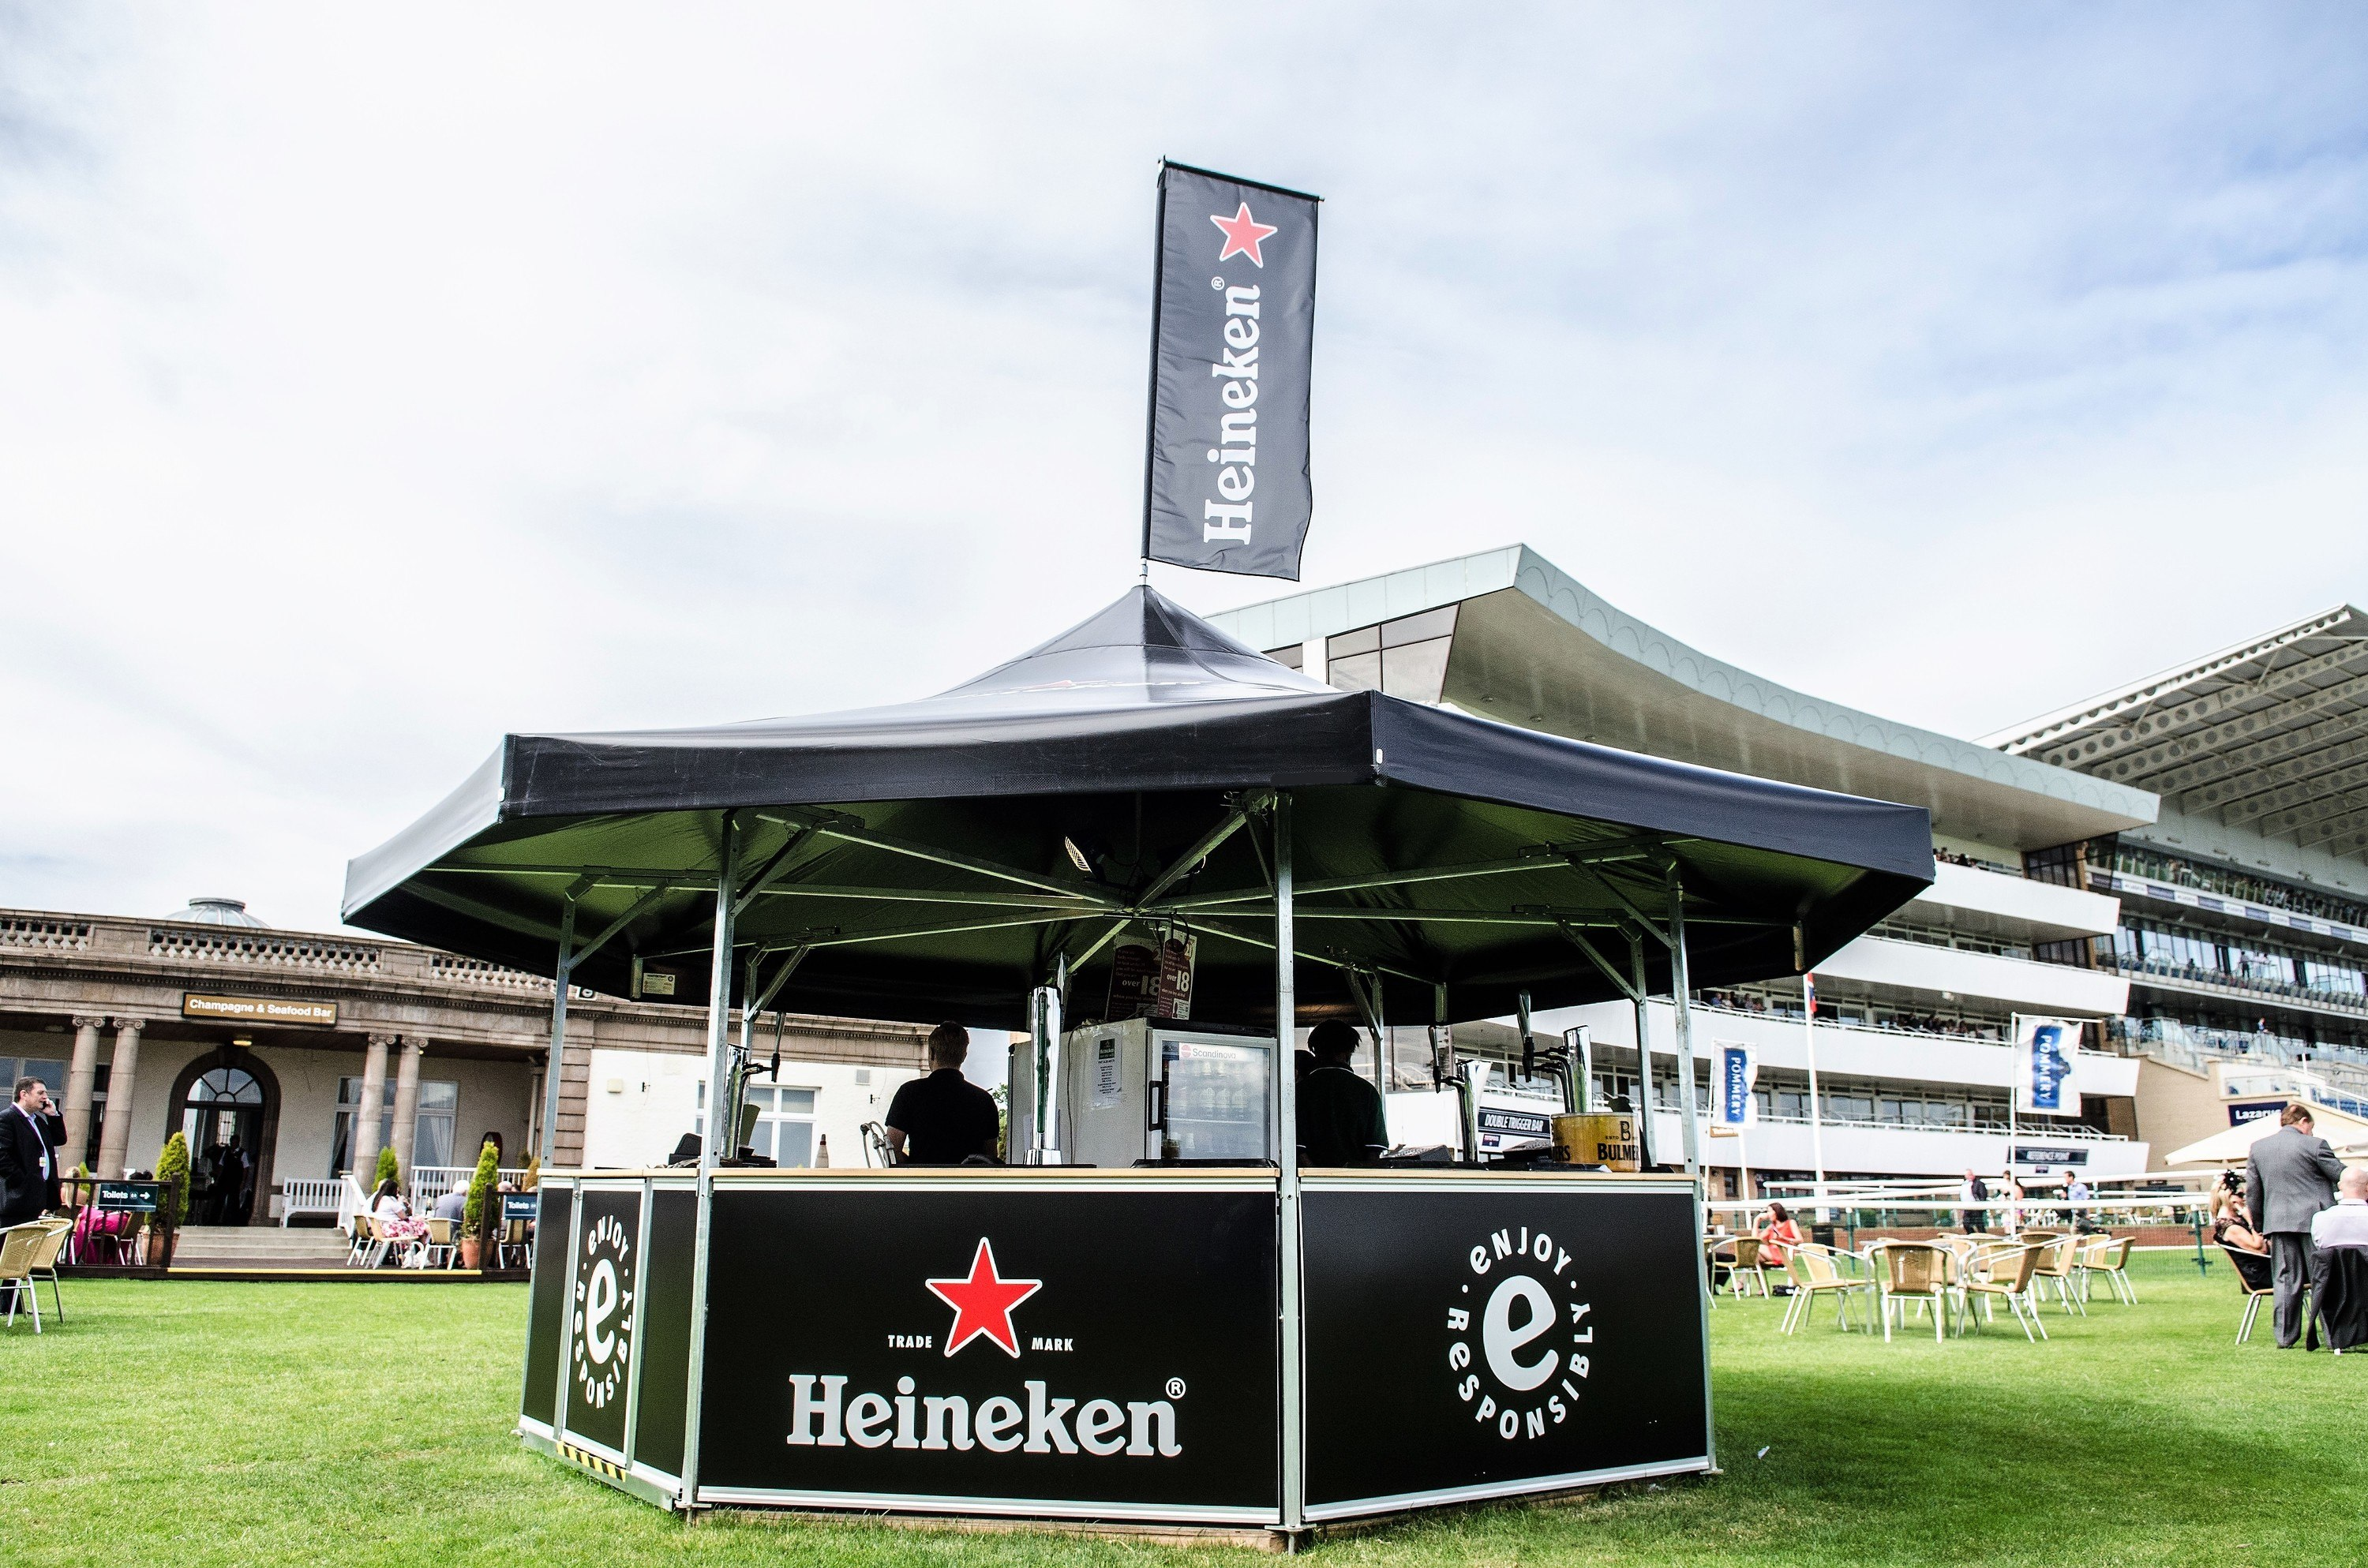 <p>Event, Mobile &amp; Stadia Bars – Tents &amp; Marquees &#8211; Pavilion Bars &#8211; Octagonal Bar</p> <p>&nbsp;</p> <p>Ideally suited as an outdoor event bar at sporting venues including racecourses, cricket grounds etc.  Also suitable as a retail outlet for selling merchandise at music festivals, exhibitions etc.</p>